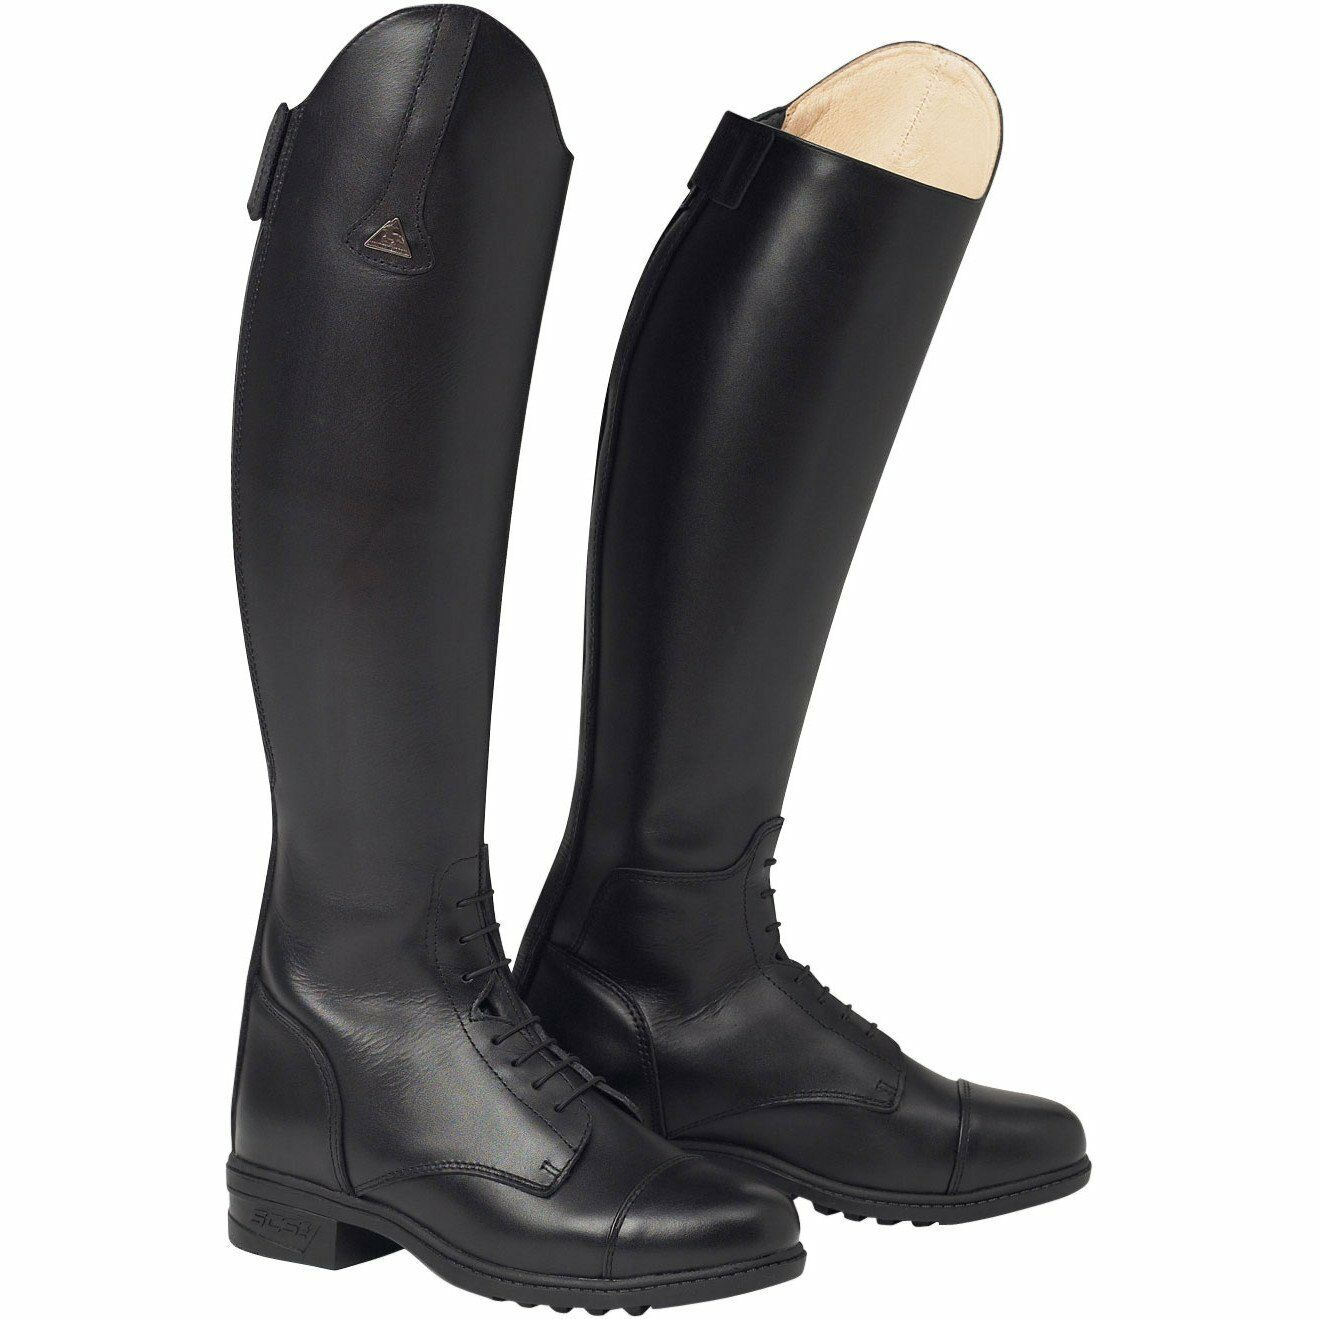 Mountain horse richmond high rider ladies riding Stiefel